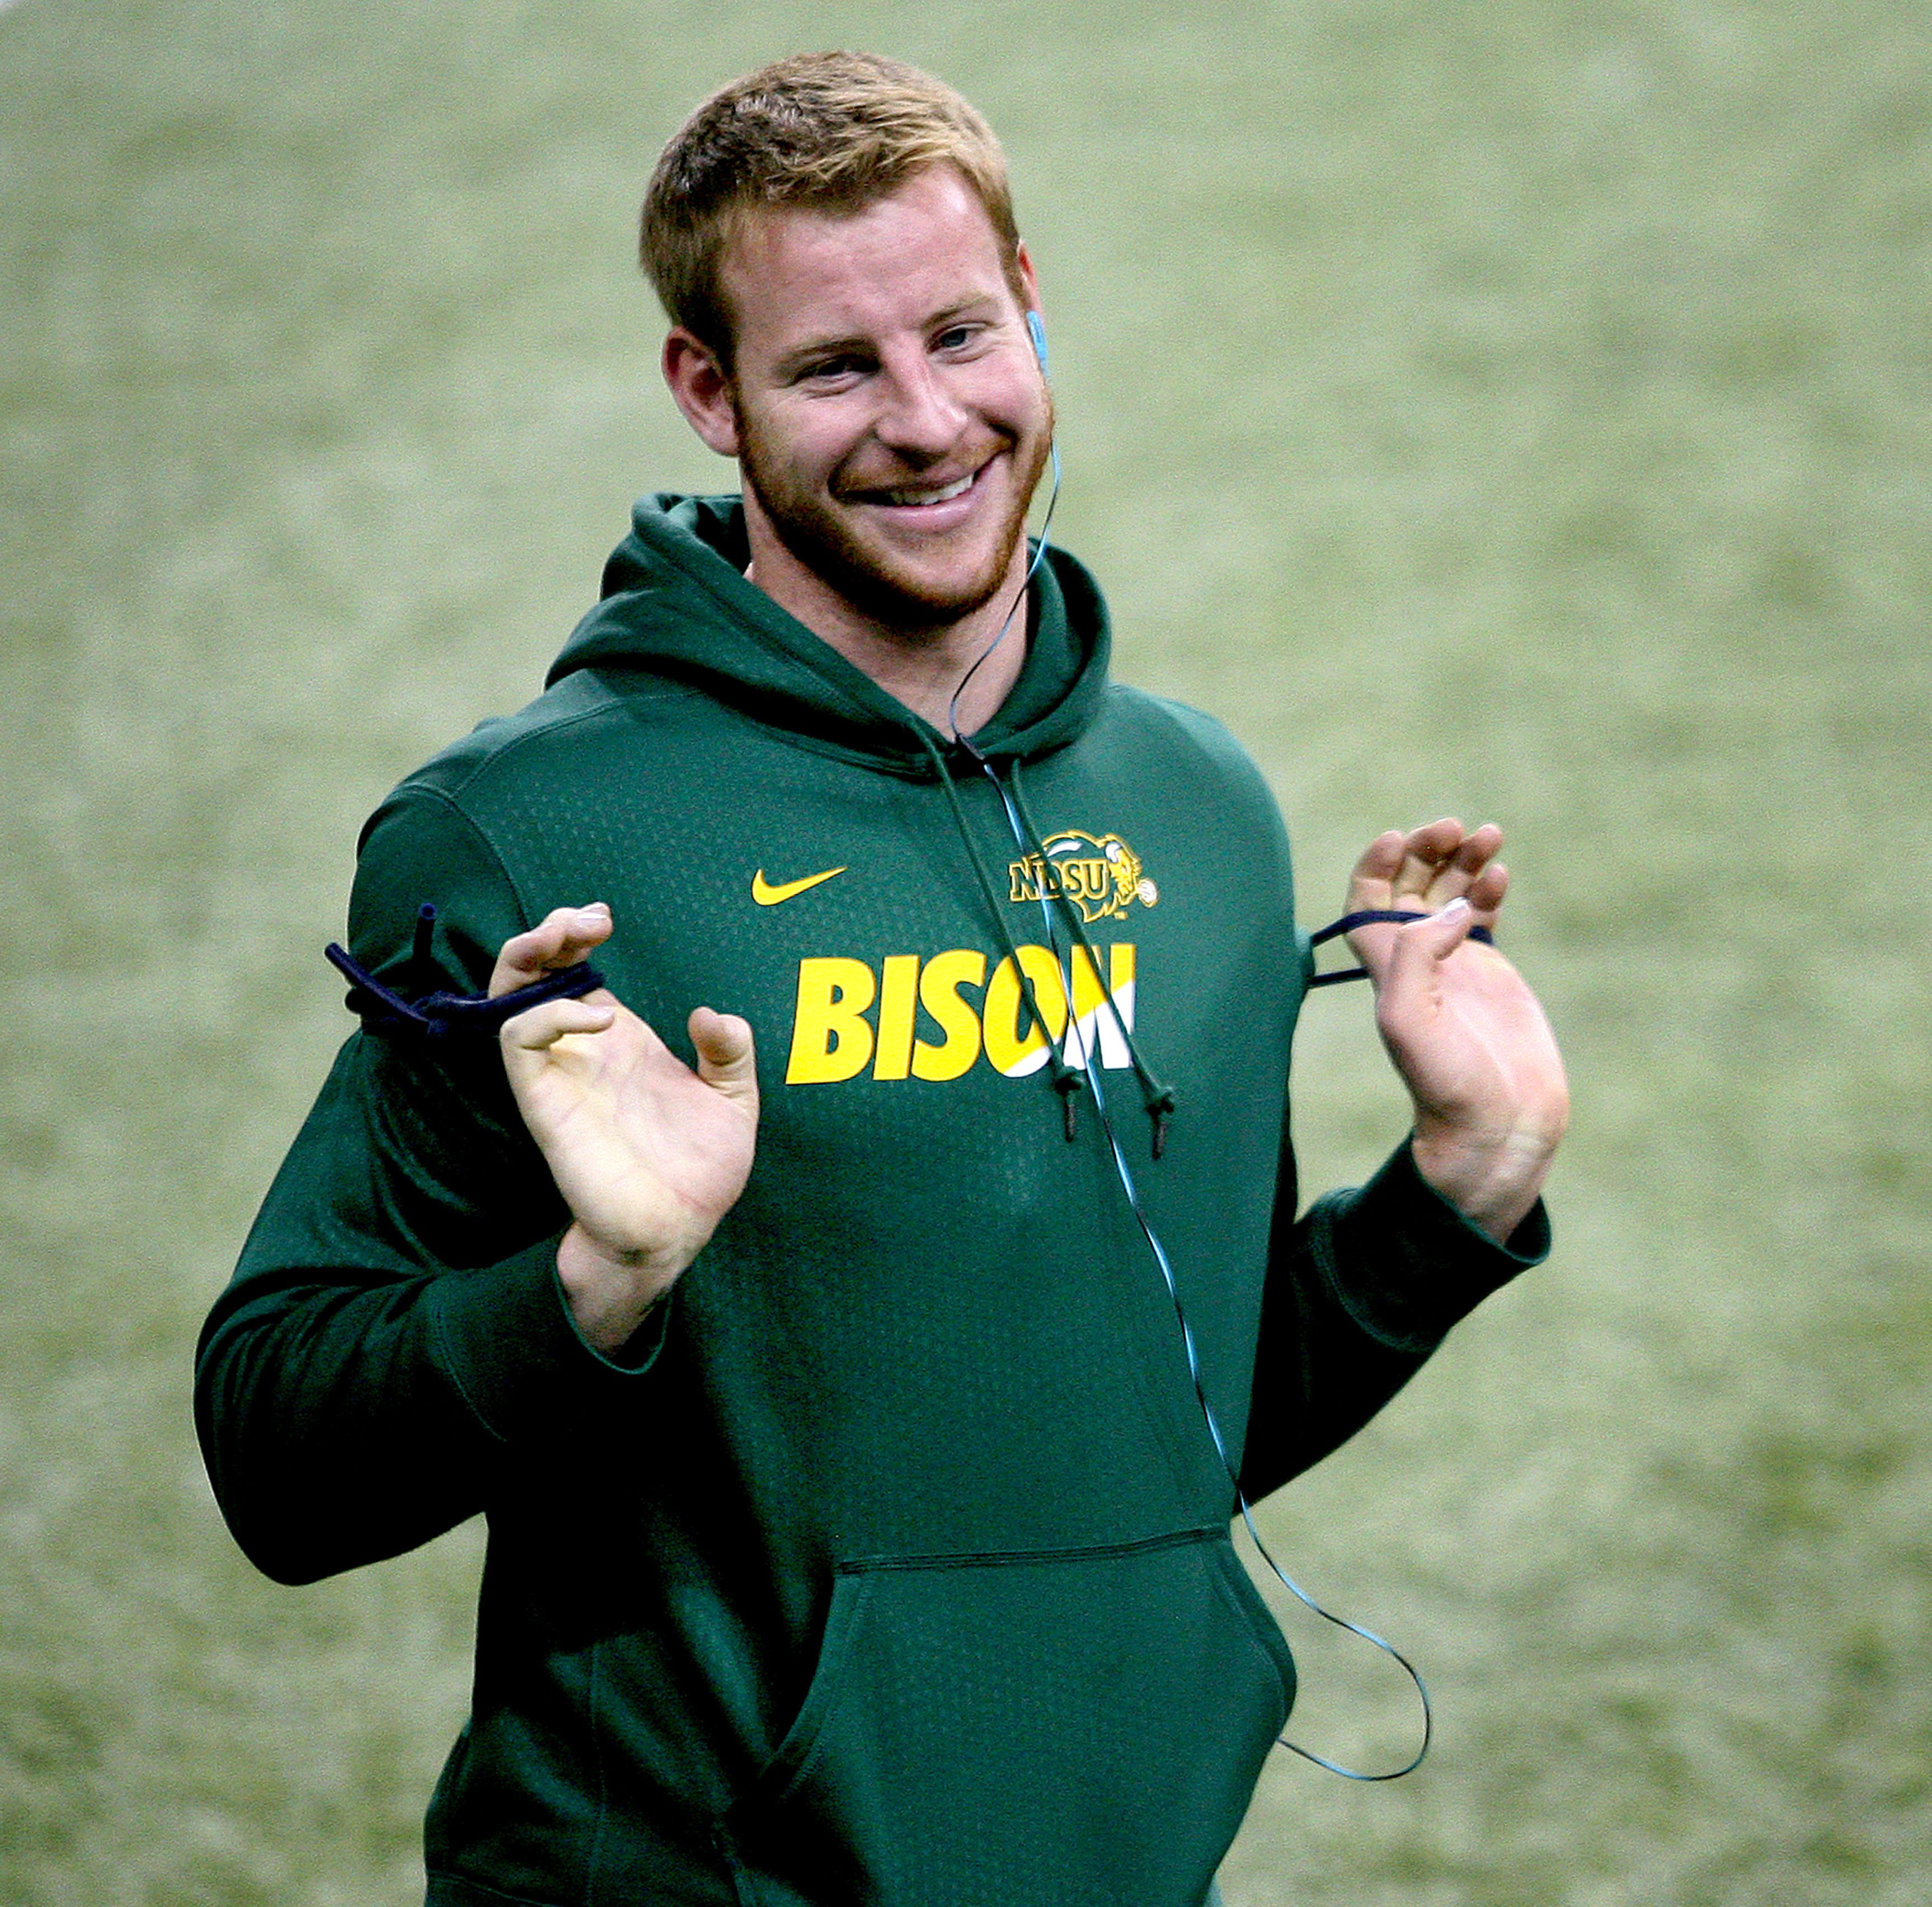 Carson Wentz warms up as workouts begin during North Dakota State's NFL Pro Day, Thursday, March 24, 2016, in Fargo, N.D. (AP Photo/Bruce Crummy)